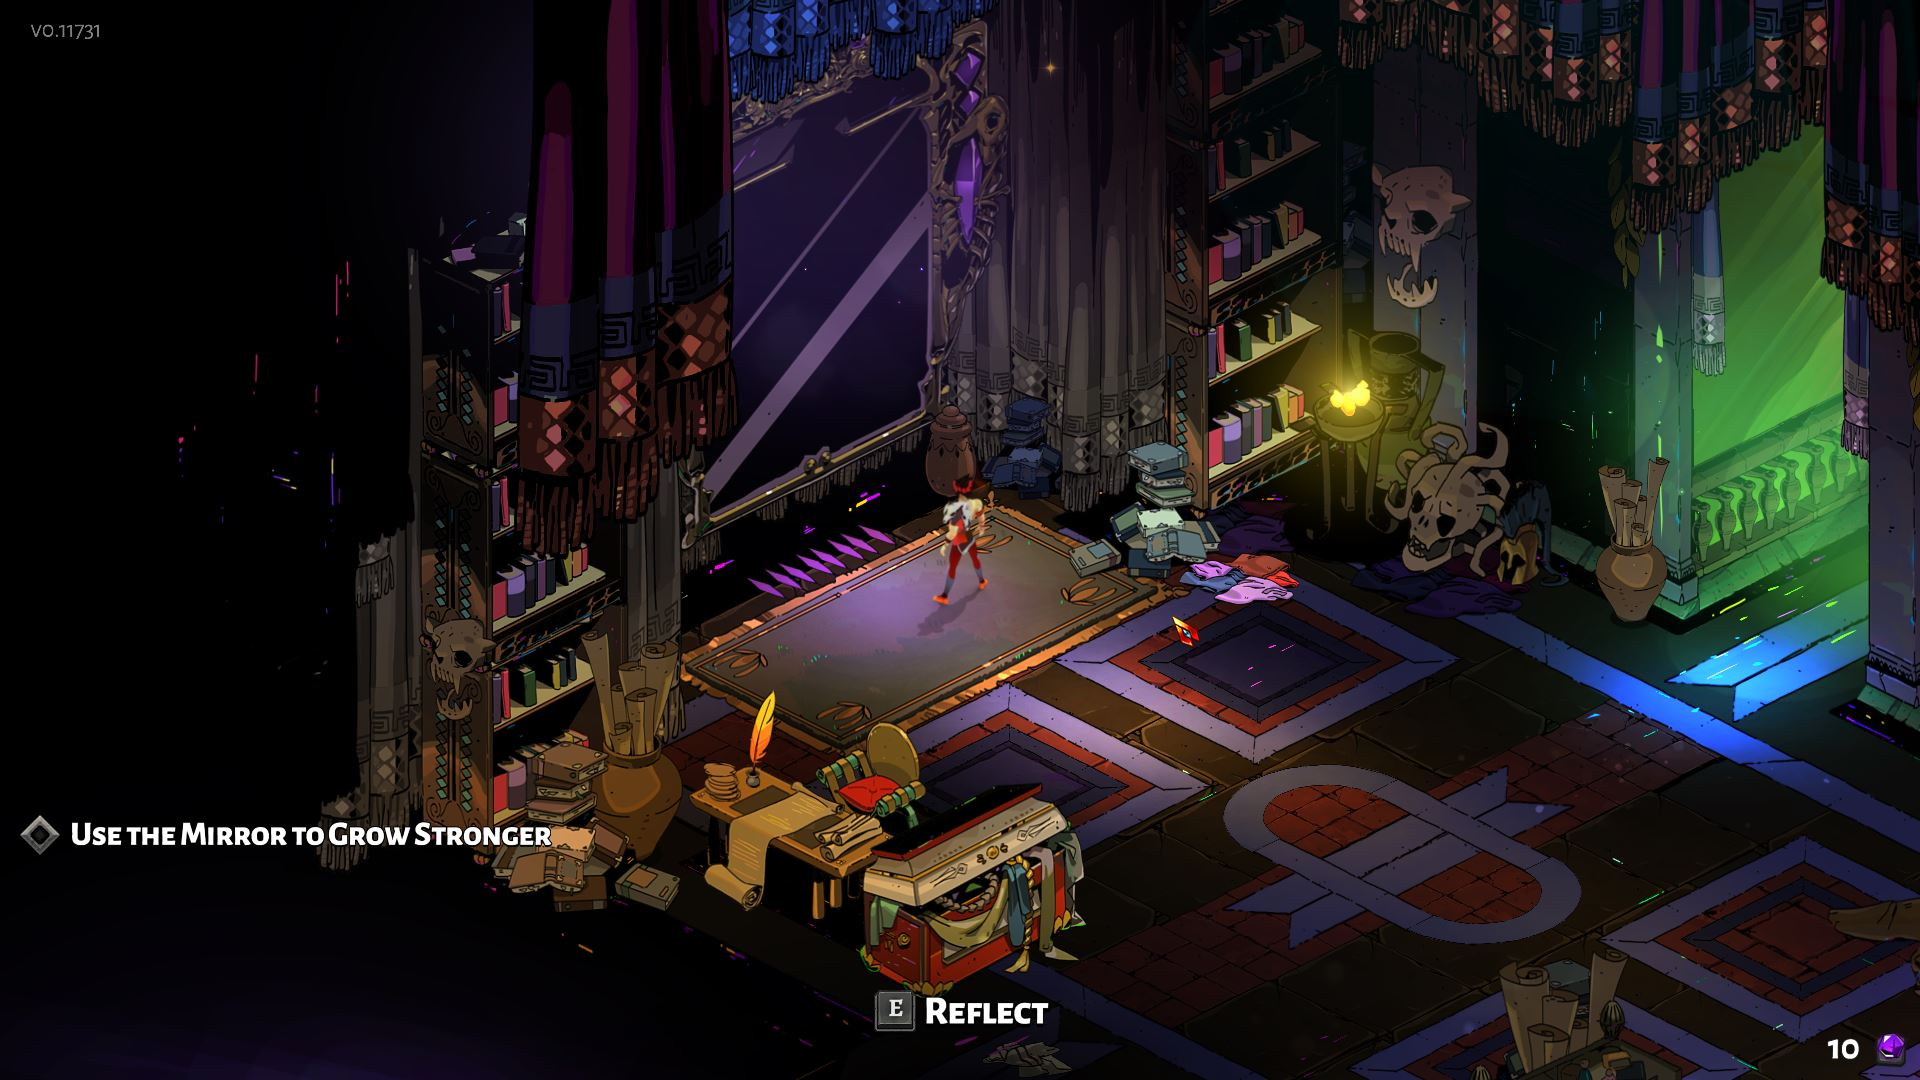 In the bedroom of Zagreus, you can upgrade his skills in the reflective mirror